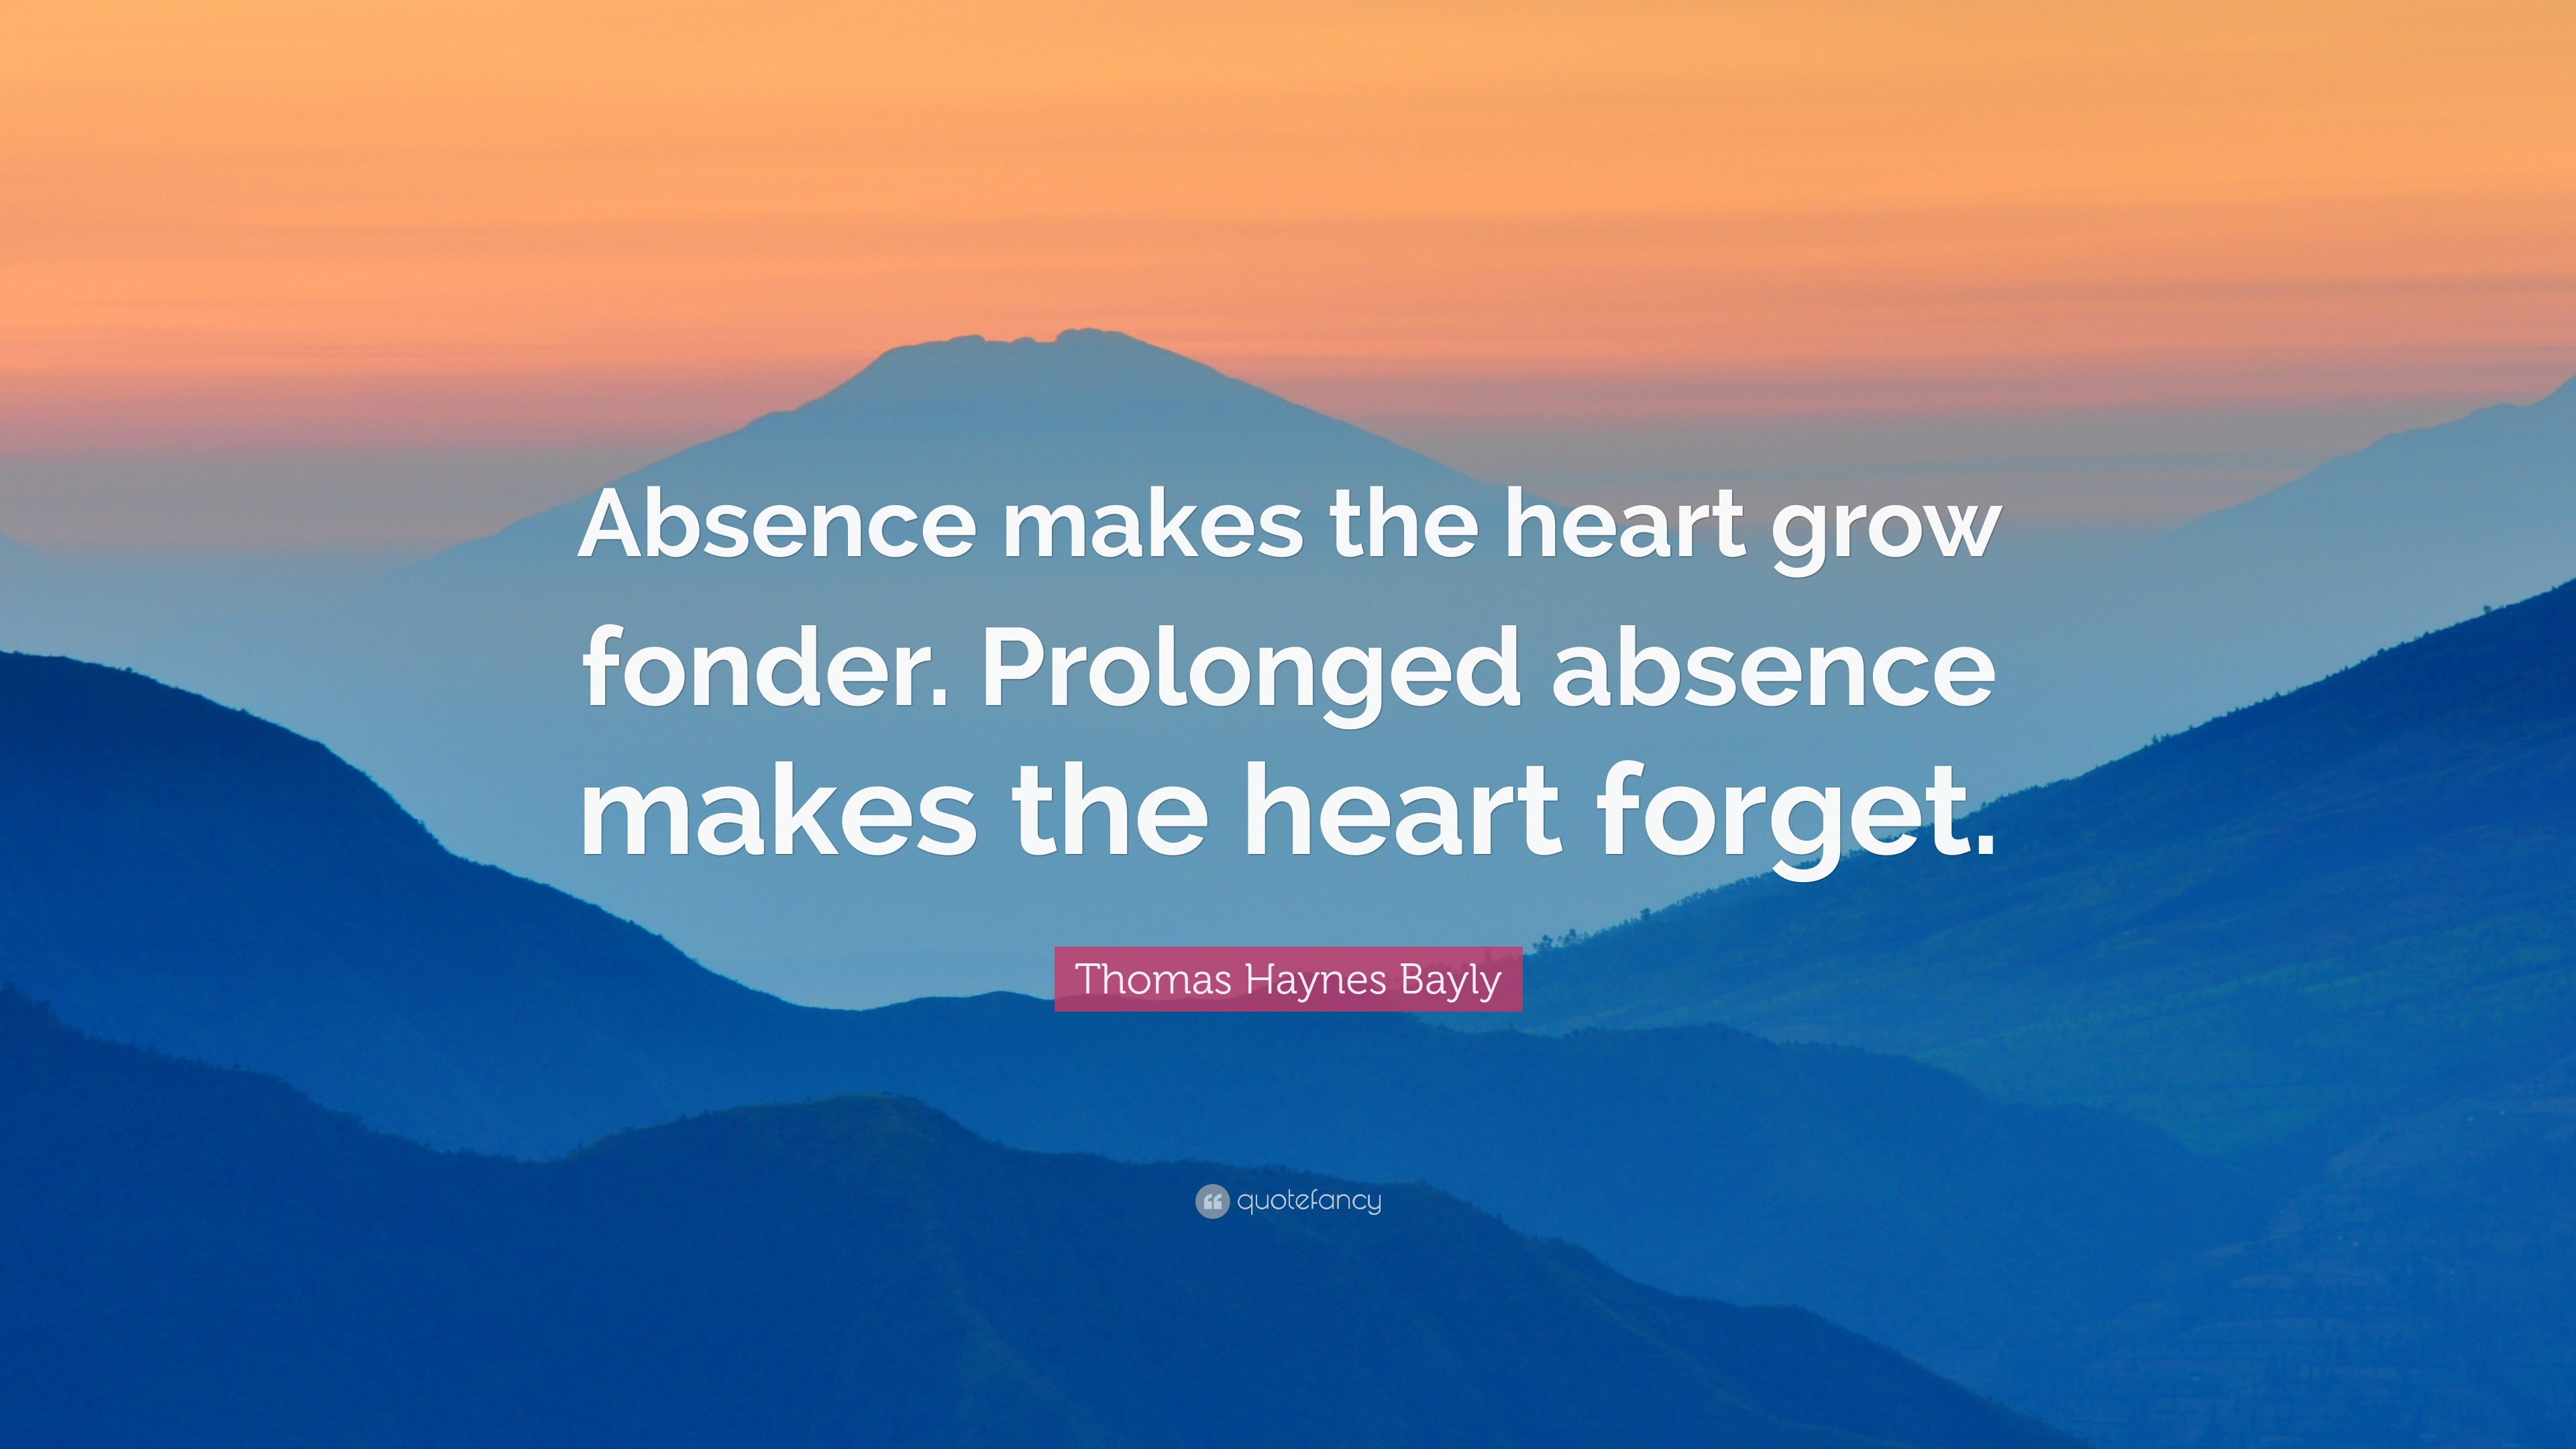 absence make the heart grow fonder essay Tis absense, however, that makes the heart grow fonder  i can proudly say an  essay of mine was marked within that city of spires.